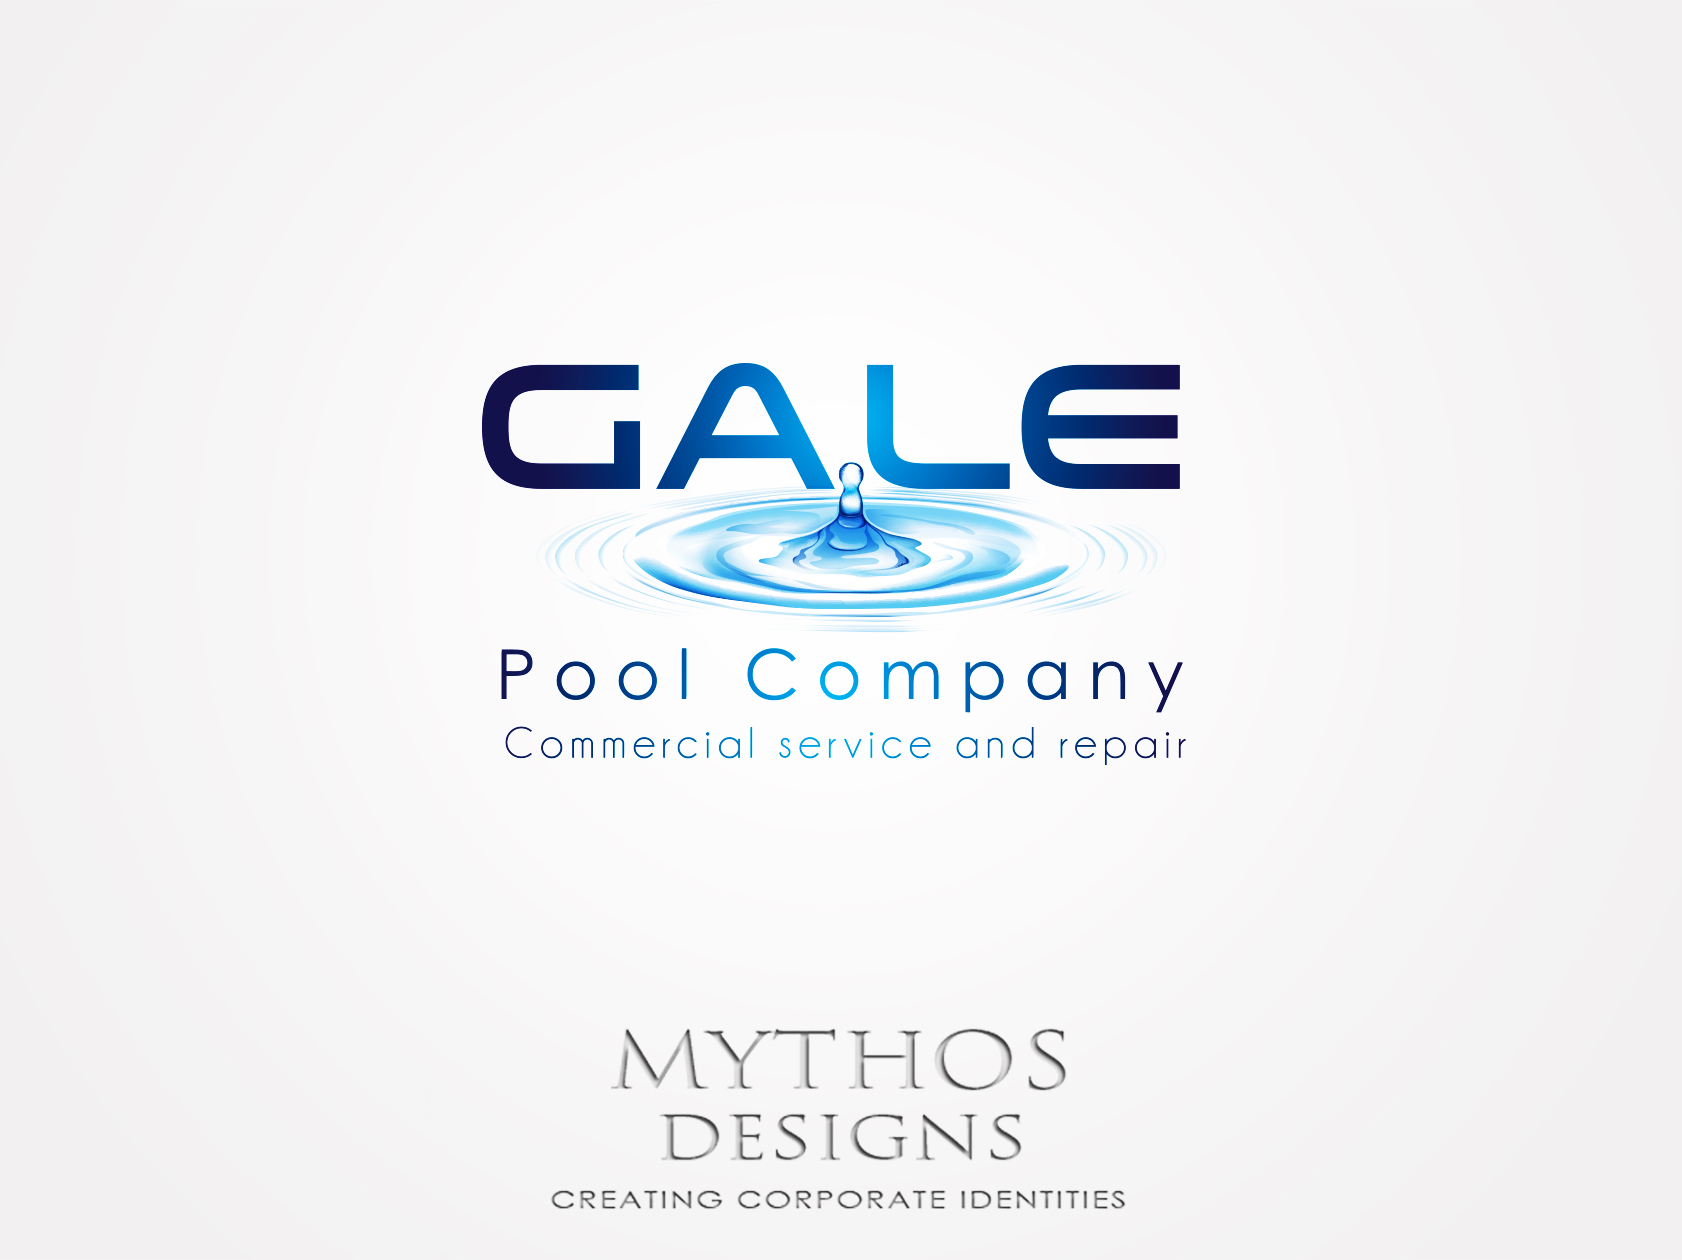 Logo Design by Mythos Designs - Entry No. 94 in the Logo Design Contest Imaginative Logo Design for Gale Pool Company.